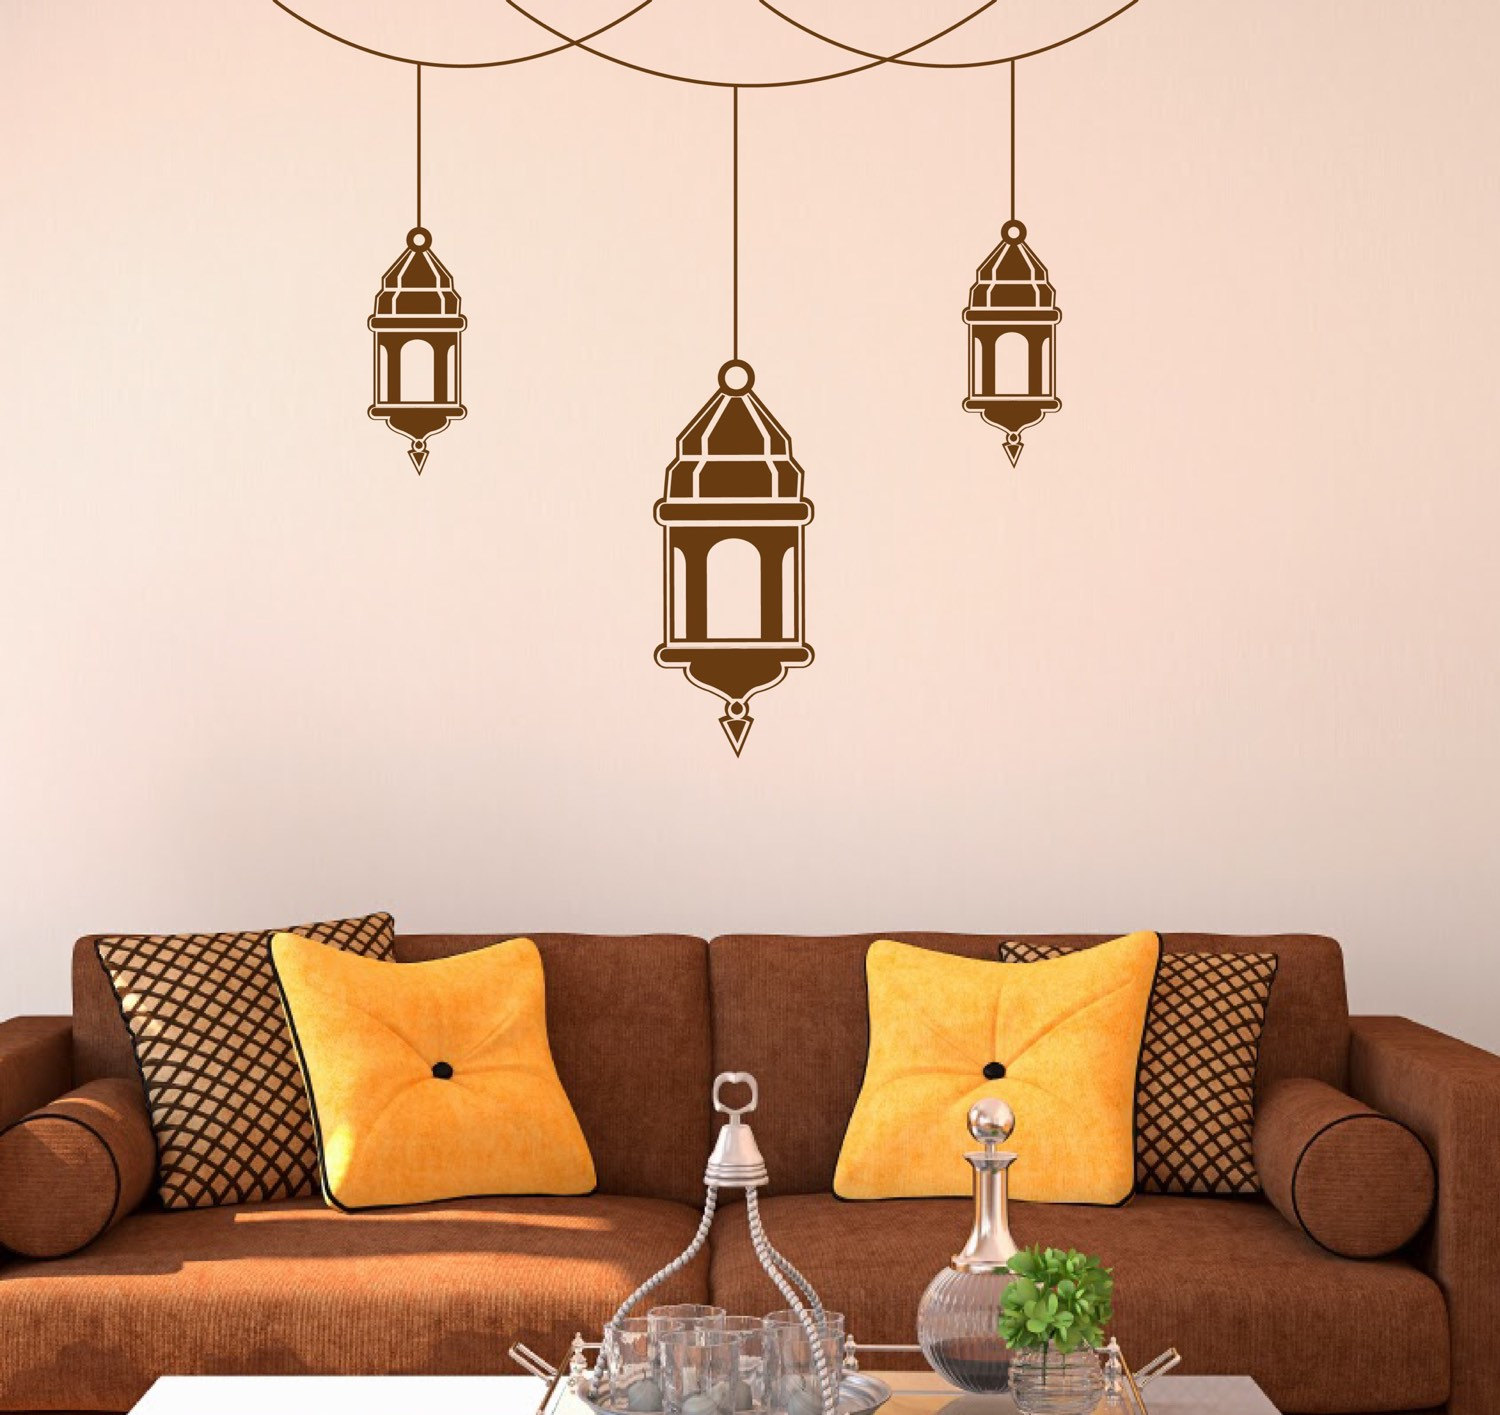 Hanging Lantern Wall Sticker